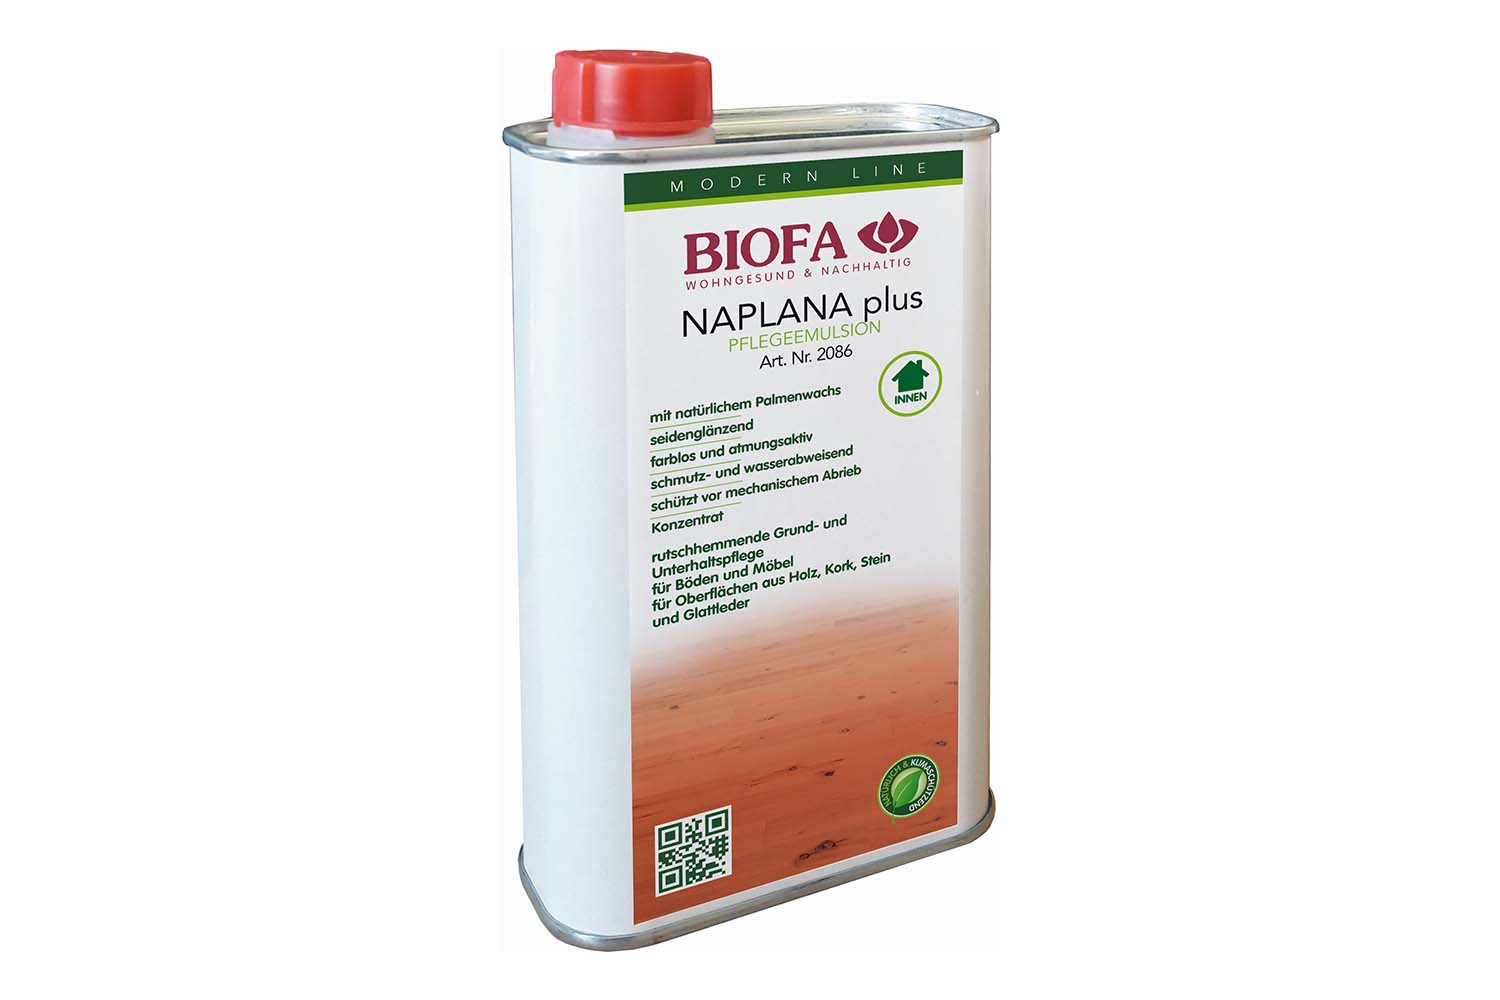 Biofa NAPLANA Plus antirutsch Pflegeemulsion